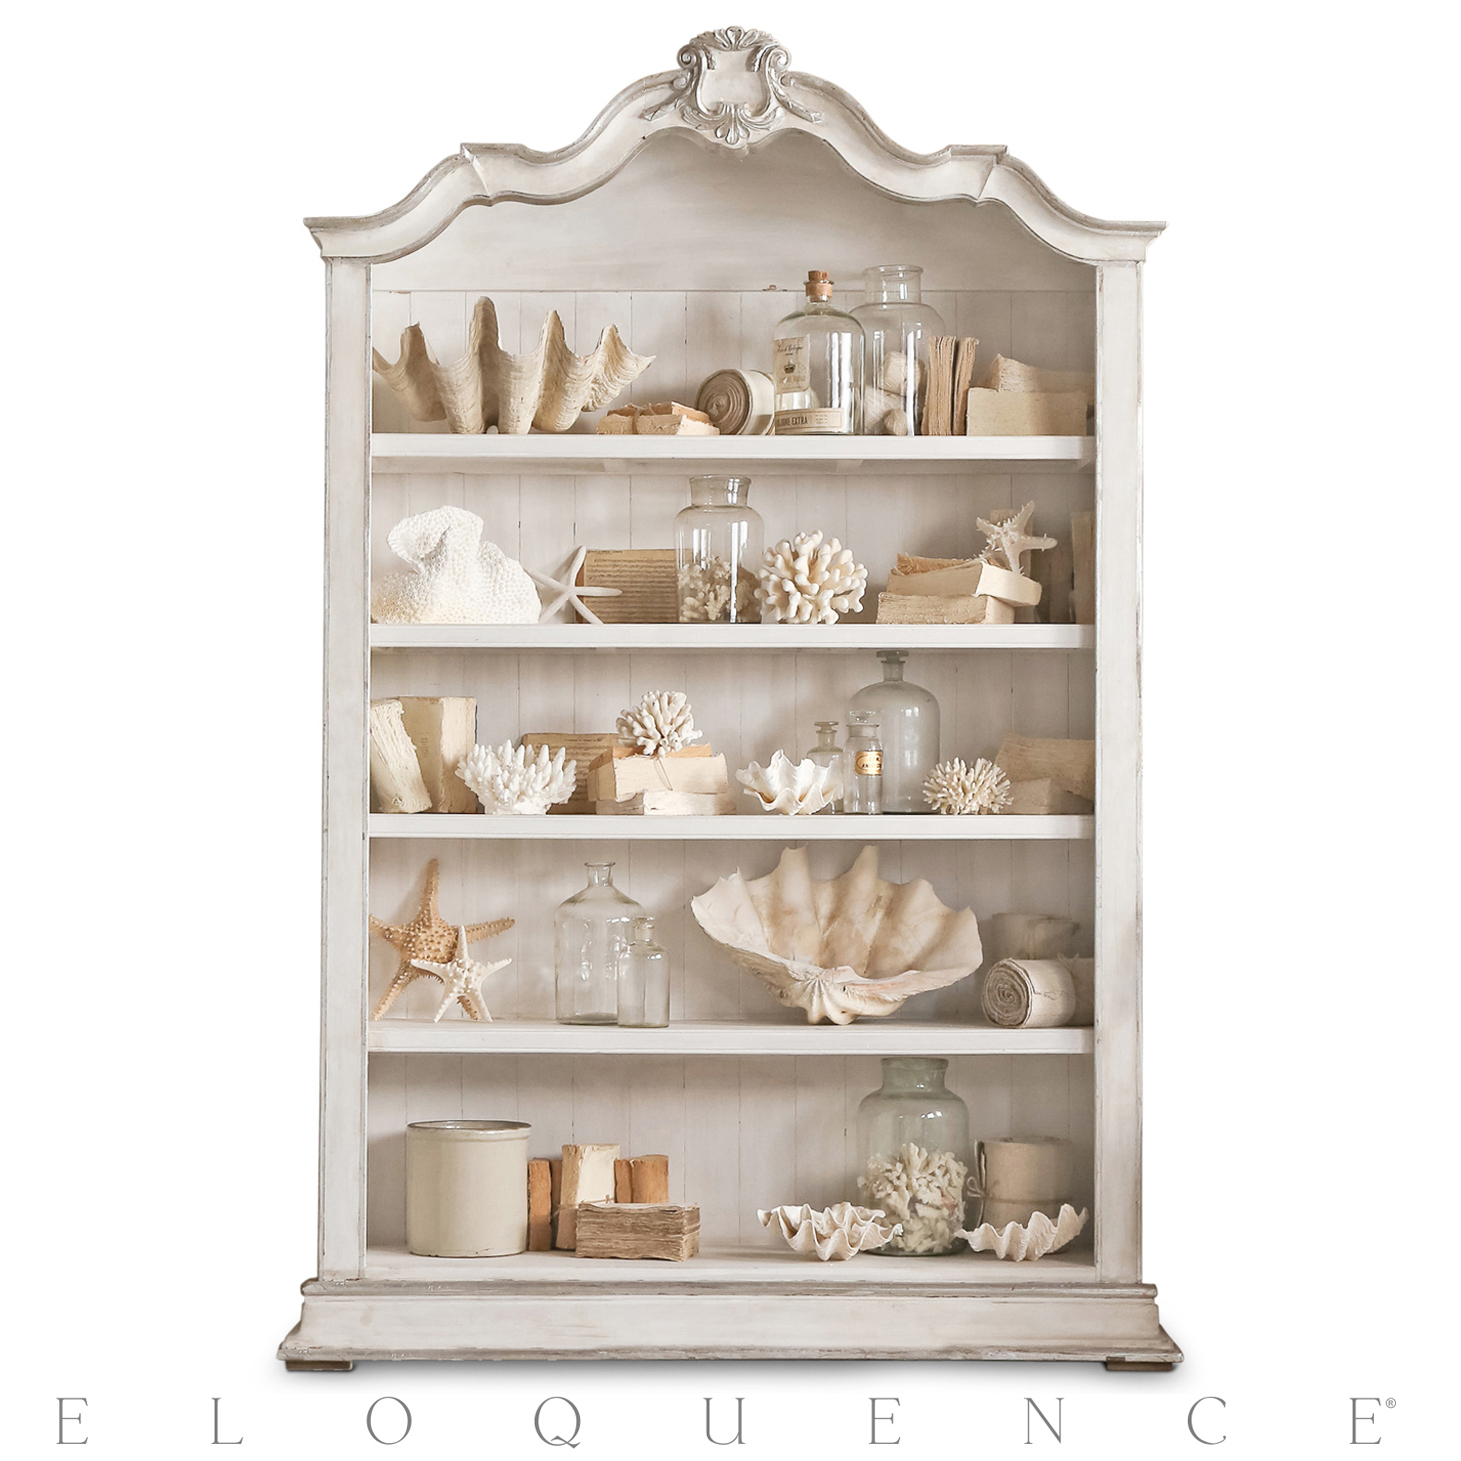 Eloquence® Rousseau Bookcase in Silver and Pale White